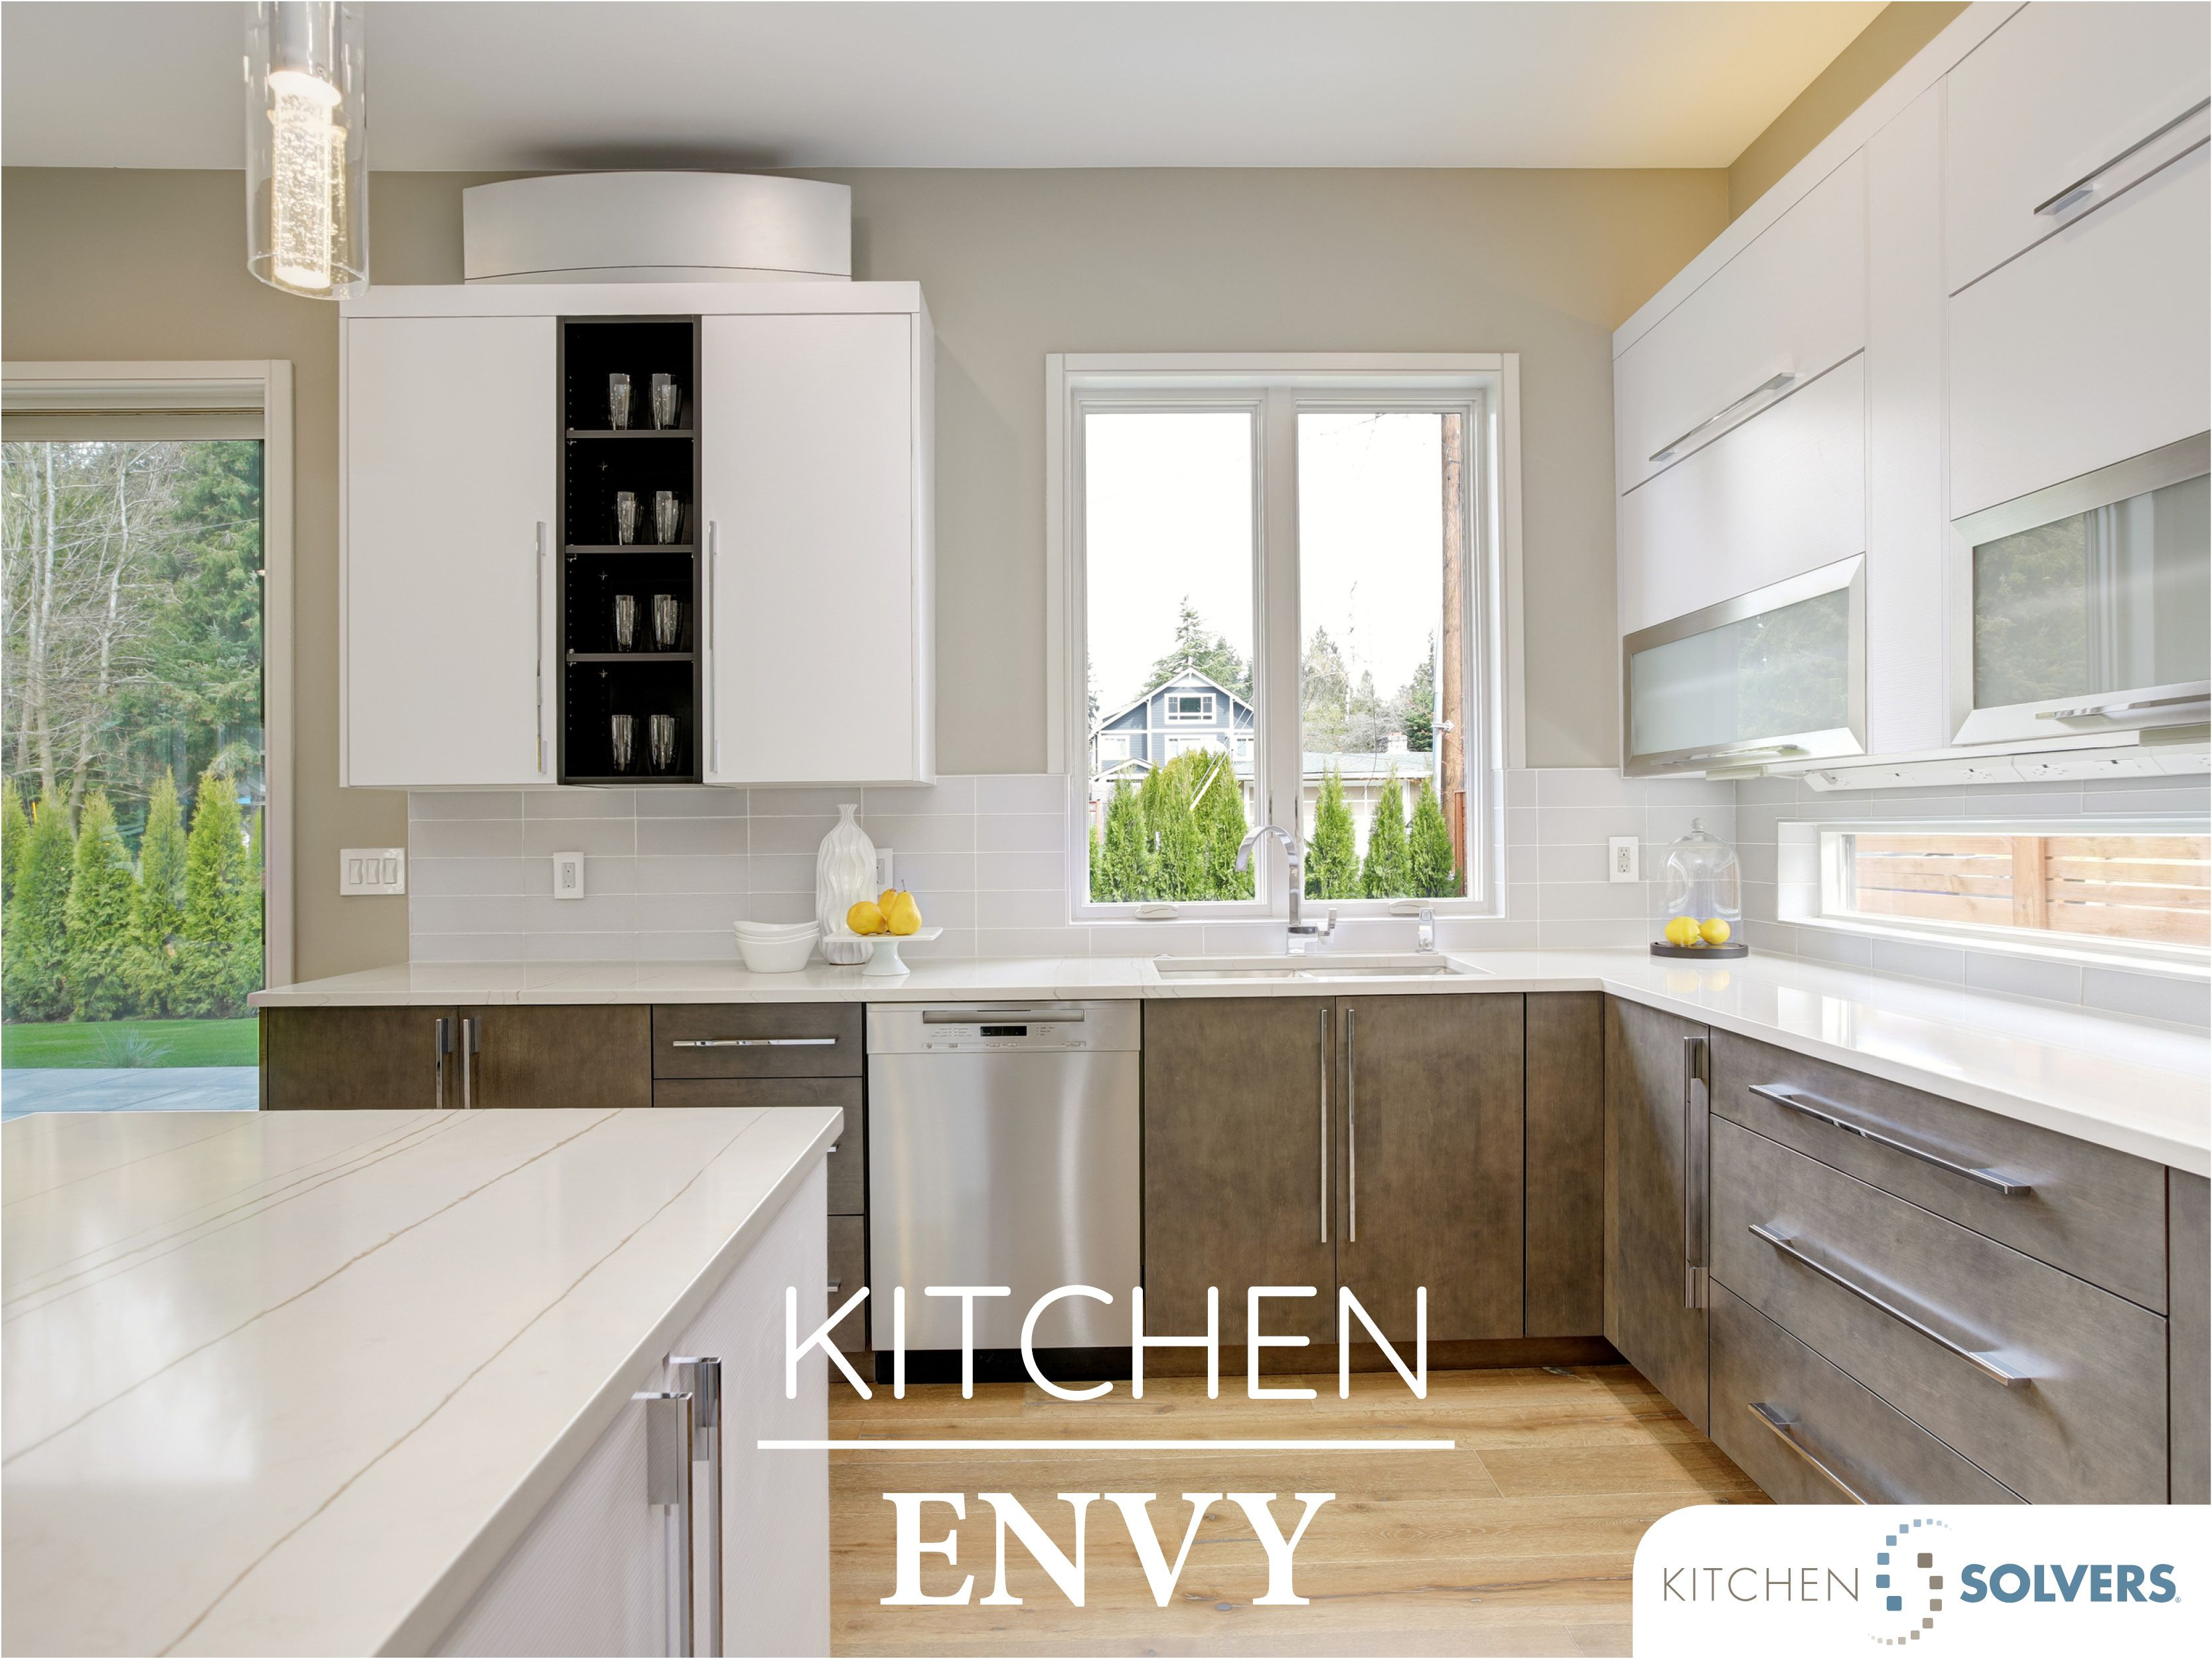 Impeccable Pairs This Two Toned Kitchen Has A Combination Of Two Colors Two Text In 2020 Country Kitchen Cabinets Stock Kitchen Cabinets Kitchen Cabinets And Granite